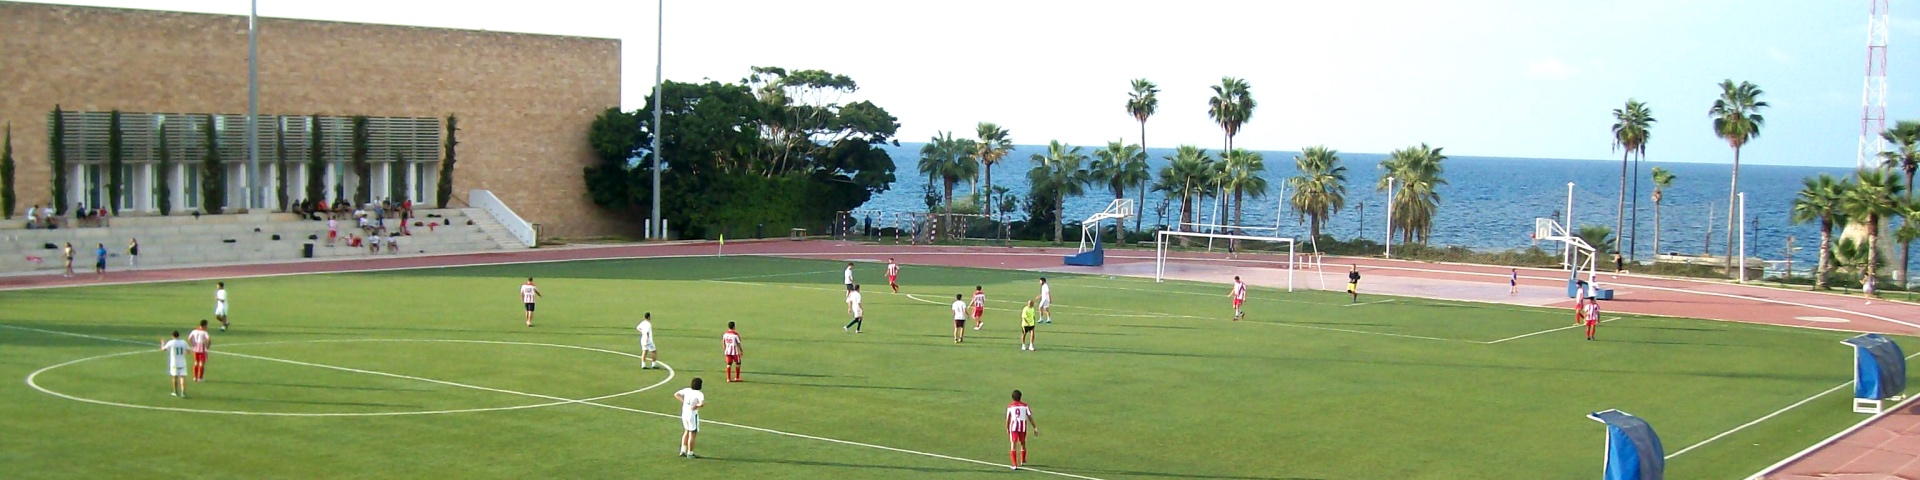 Football pitch overlooking the sea at American University of Beirut